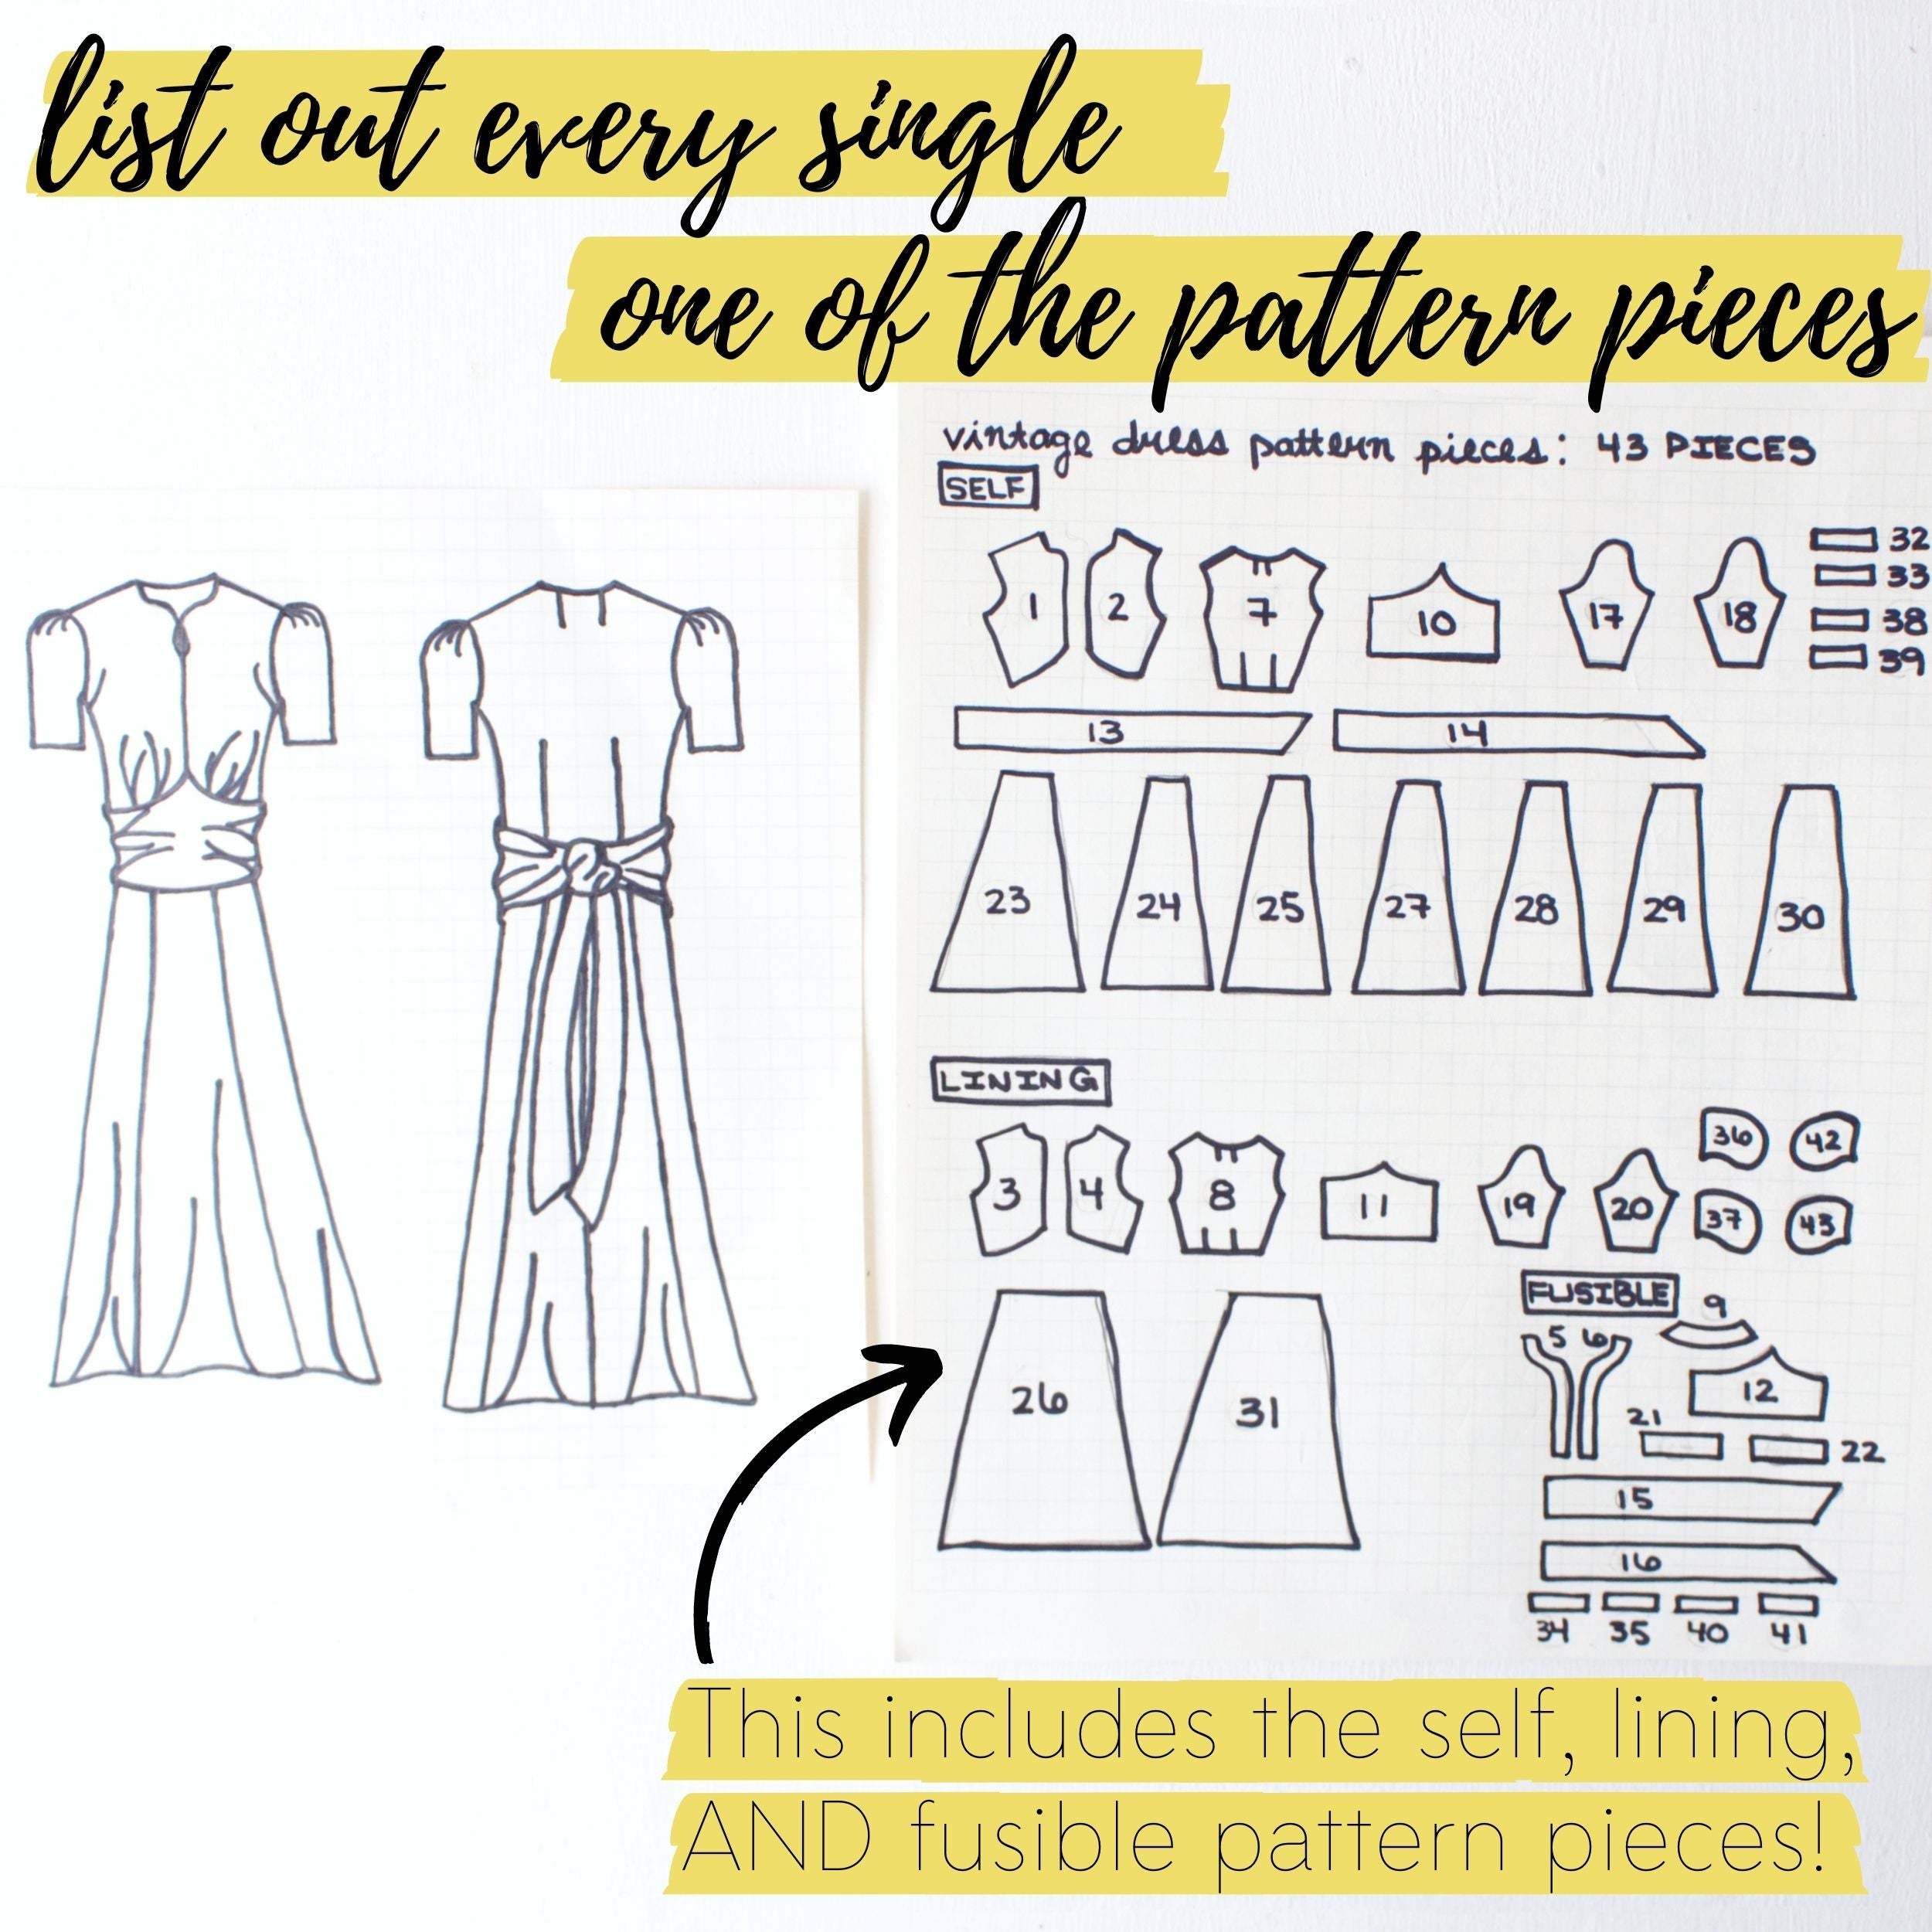 How to bring a vintage sewing pattern to life: List out the pieces